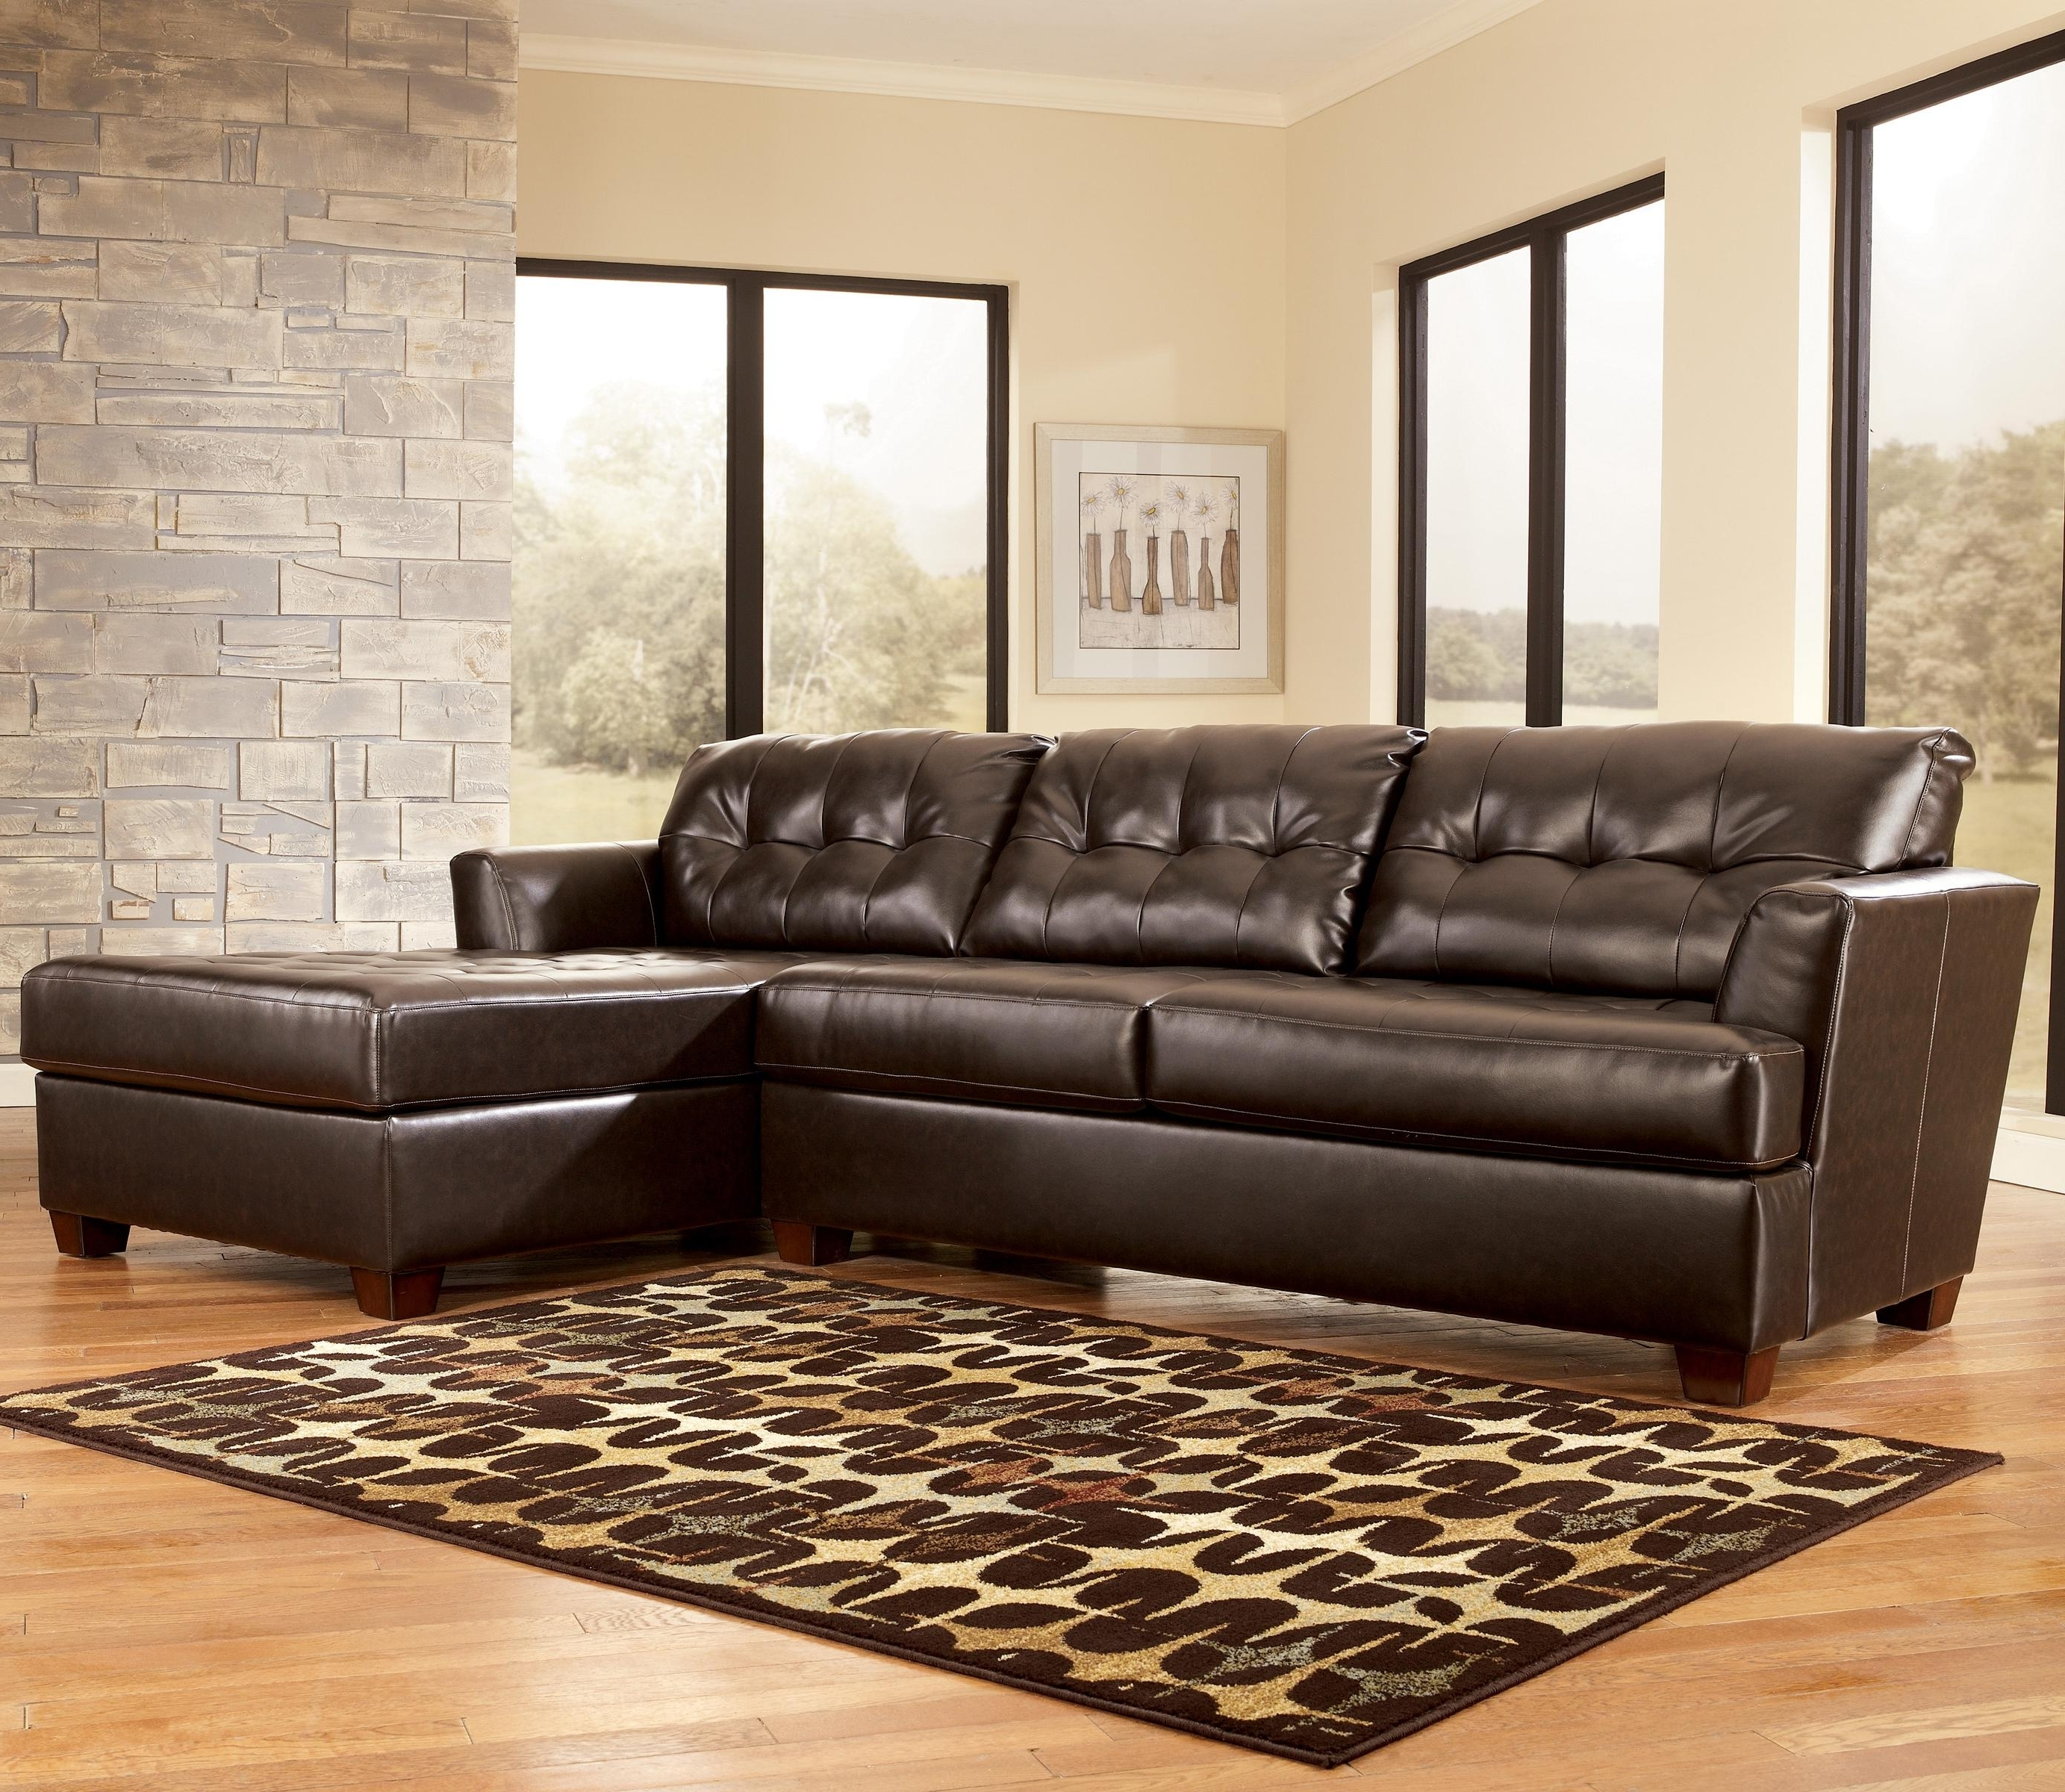 Current Home Furniture Sectional Sofas For Dixon Durablend – Chocolate Sectional Sofasignature Design (View 4 of 15)